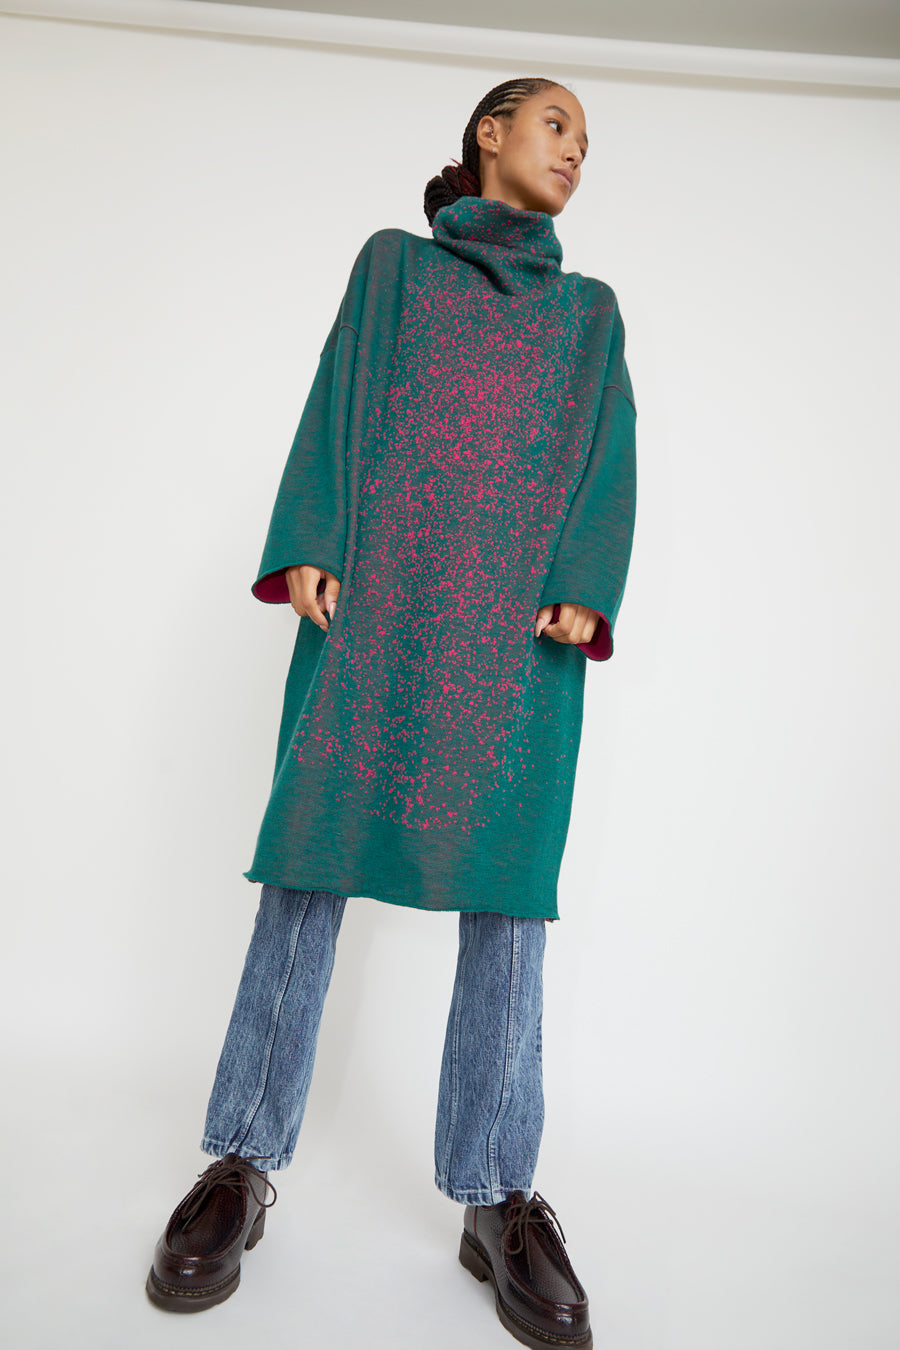 Anntian Knitdress in Green and Pink Cosmic